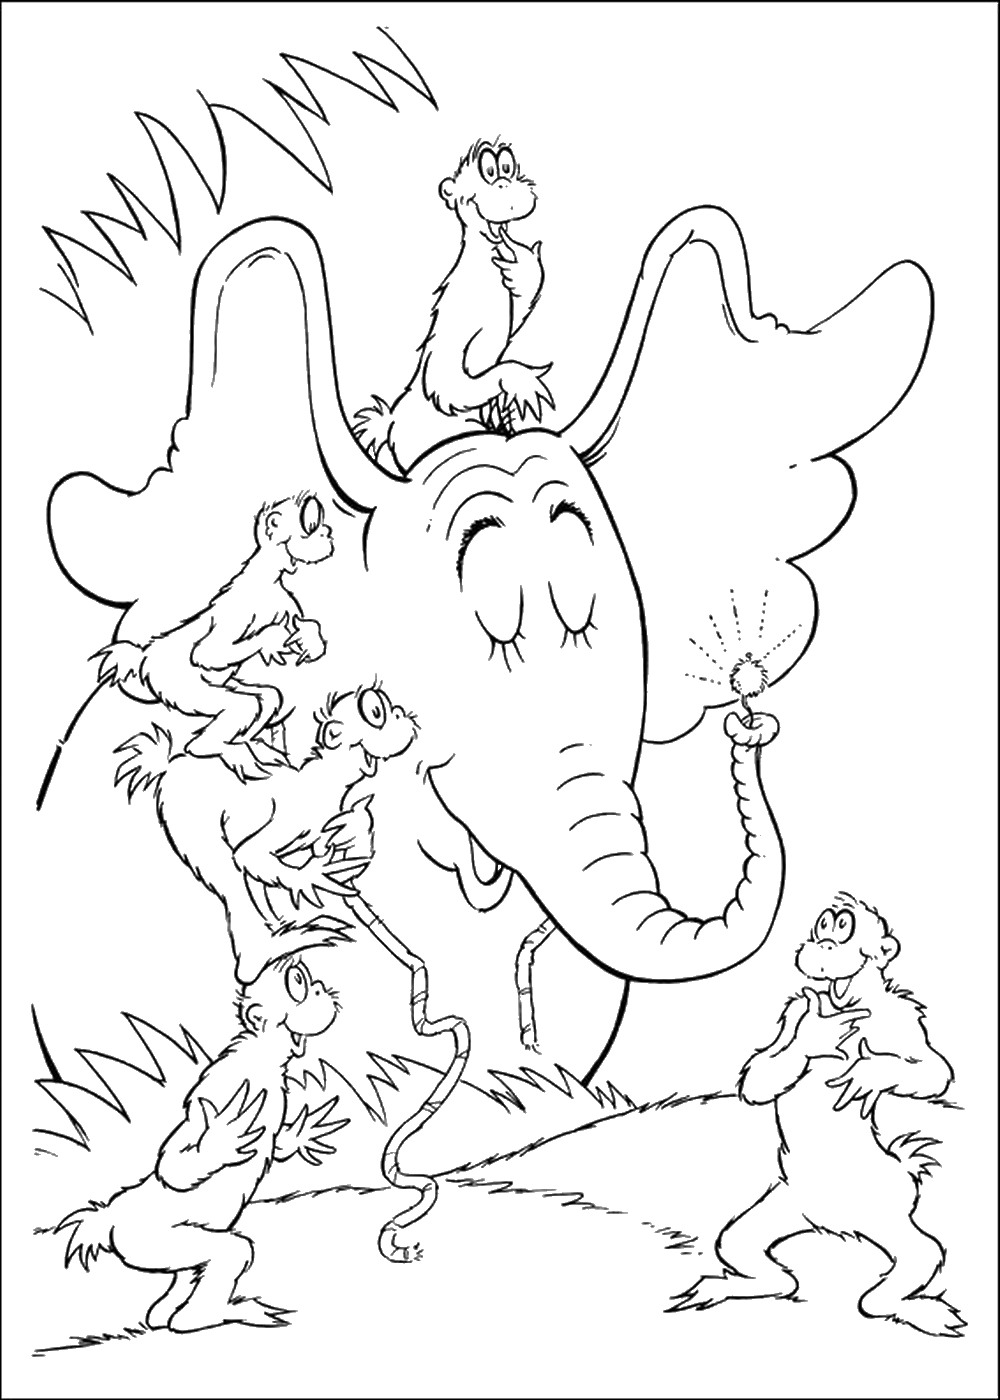 horton hears a who coloring pages horton hears a who coloring pages hears coloring who pages horton a